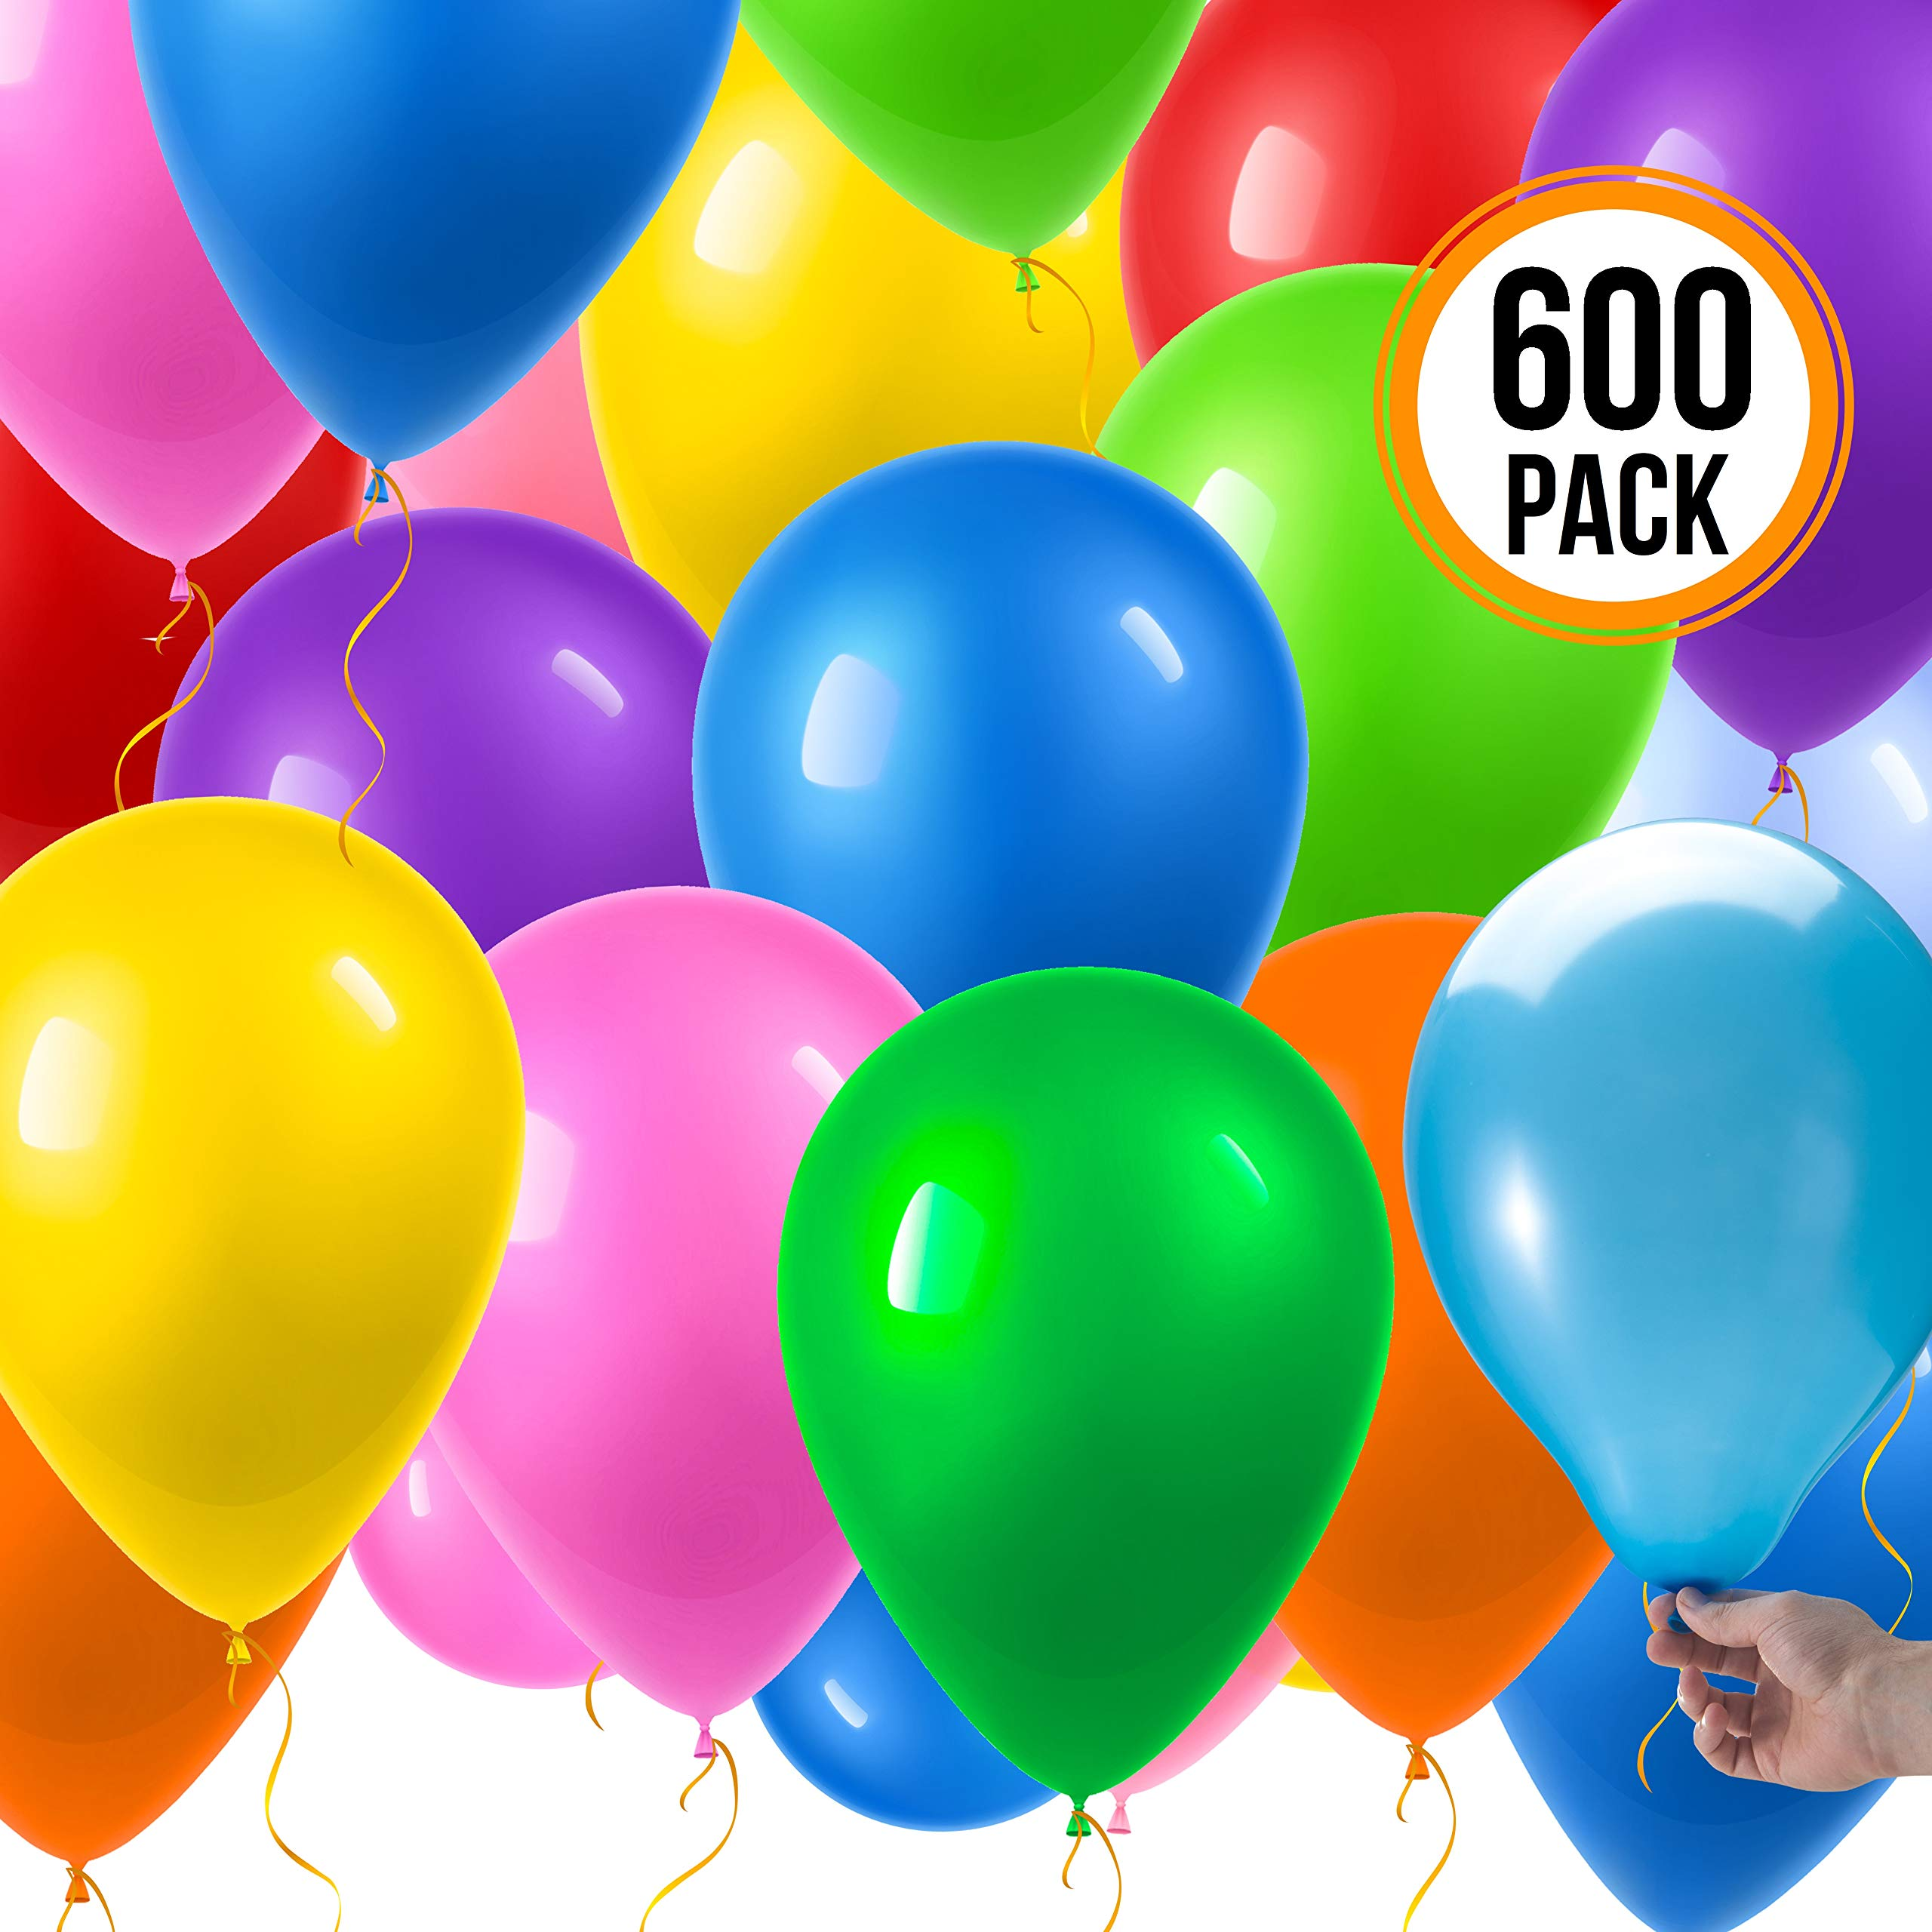 Prextex 600 Party Balloons 12 Inch 10 Assorted Rainbow Colors - Bulk Pack of Strong Latex Balloons for Party Decorations, Birthday Parties Supplies or Arch Decor - Helium Quality by Prextex (Image #3)